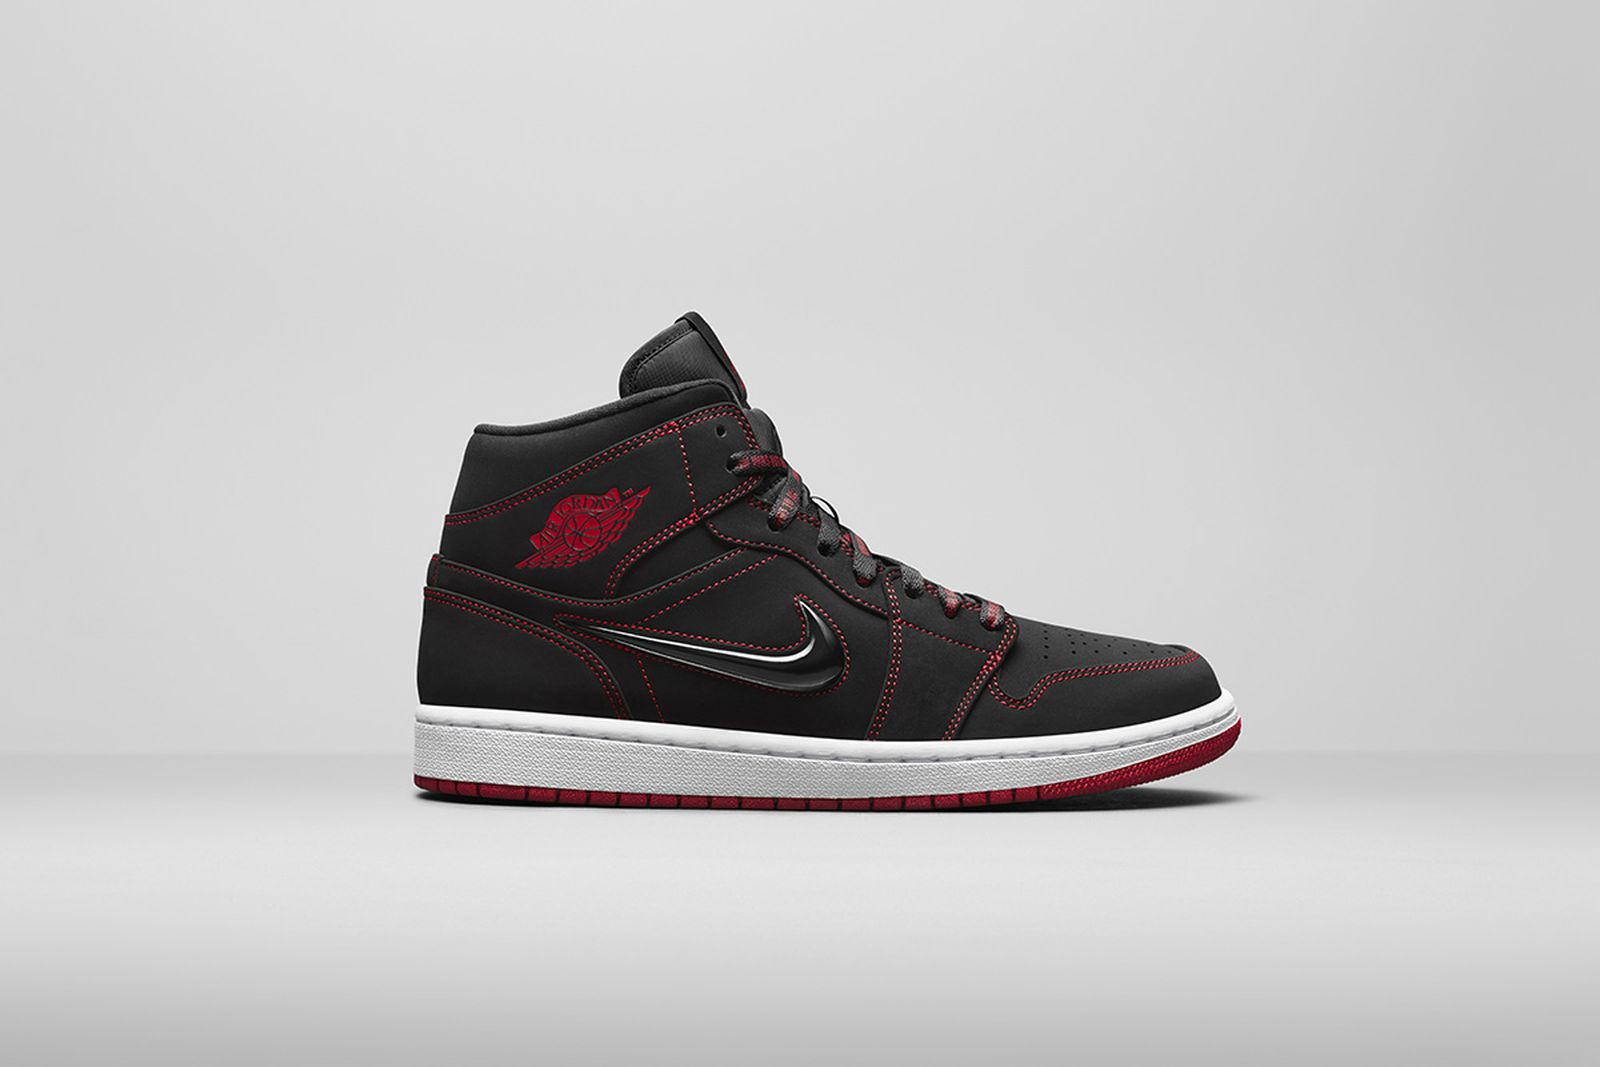 """Air Jordan 1 """"Fearless Ones"""" collection"""